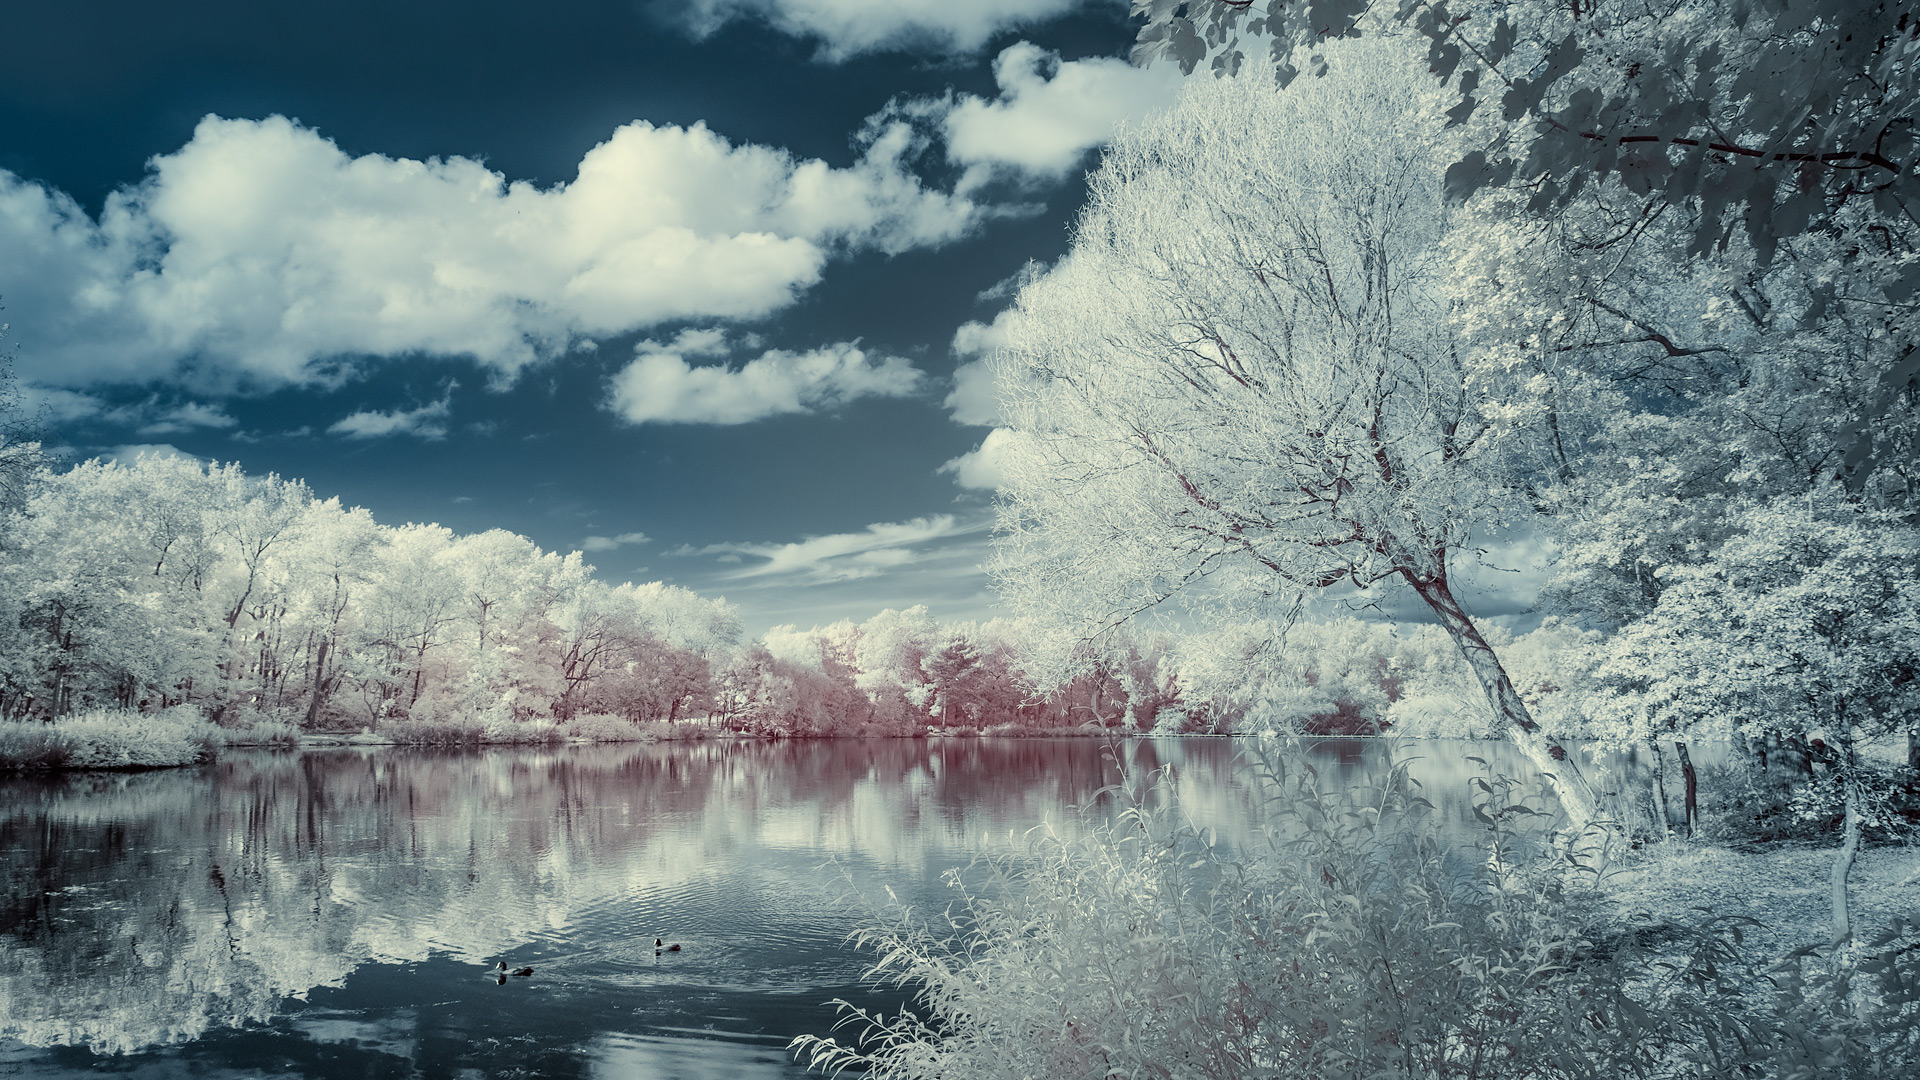 Stanley Park (infrared) / Show the Original, Infrared, Fujinon XF 16-55mm f/2.8, Fujifilm X-E2 [stanely park infrared f]